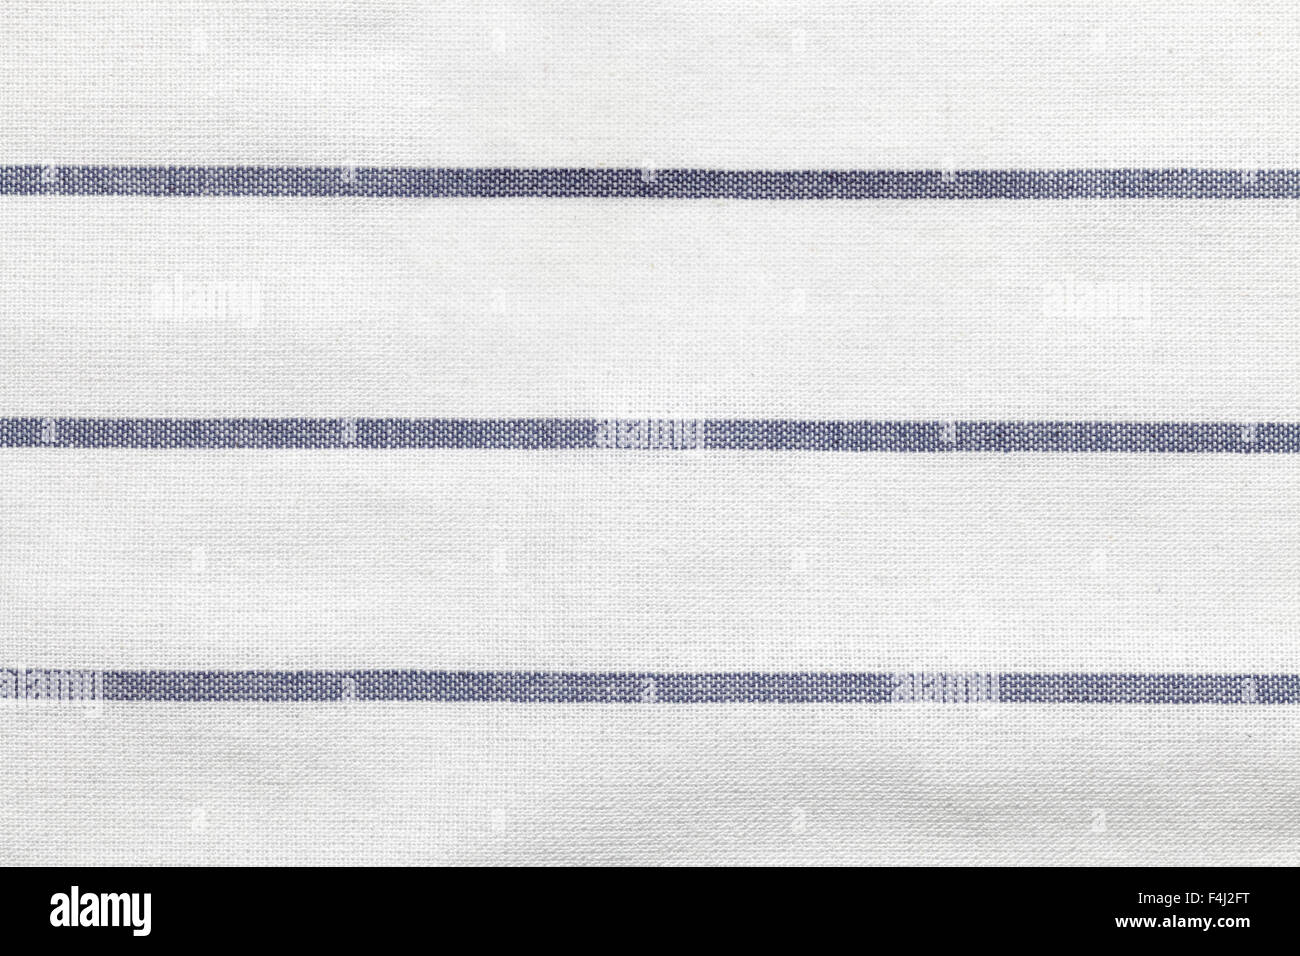 Blue tablecloth background - Stock Photo Blue White Texture Fabric Cotton Background Textile Tablecloth Gingham